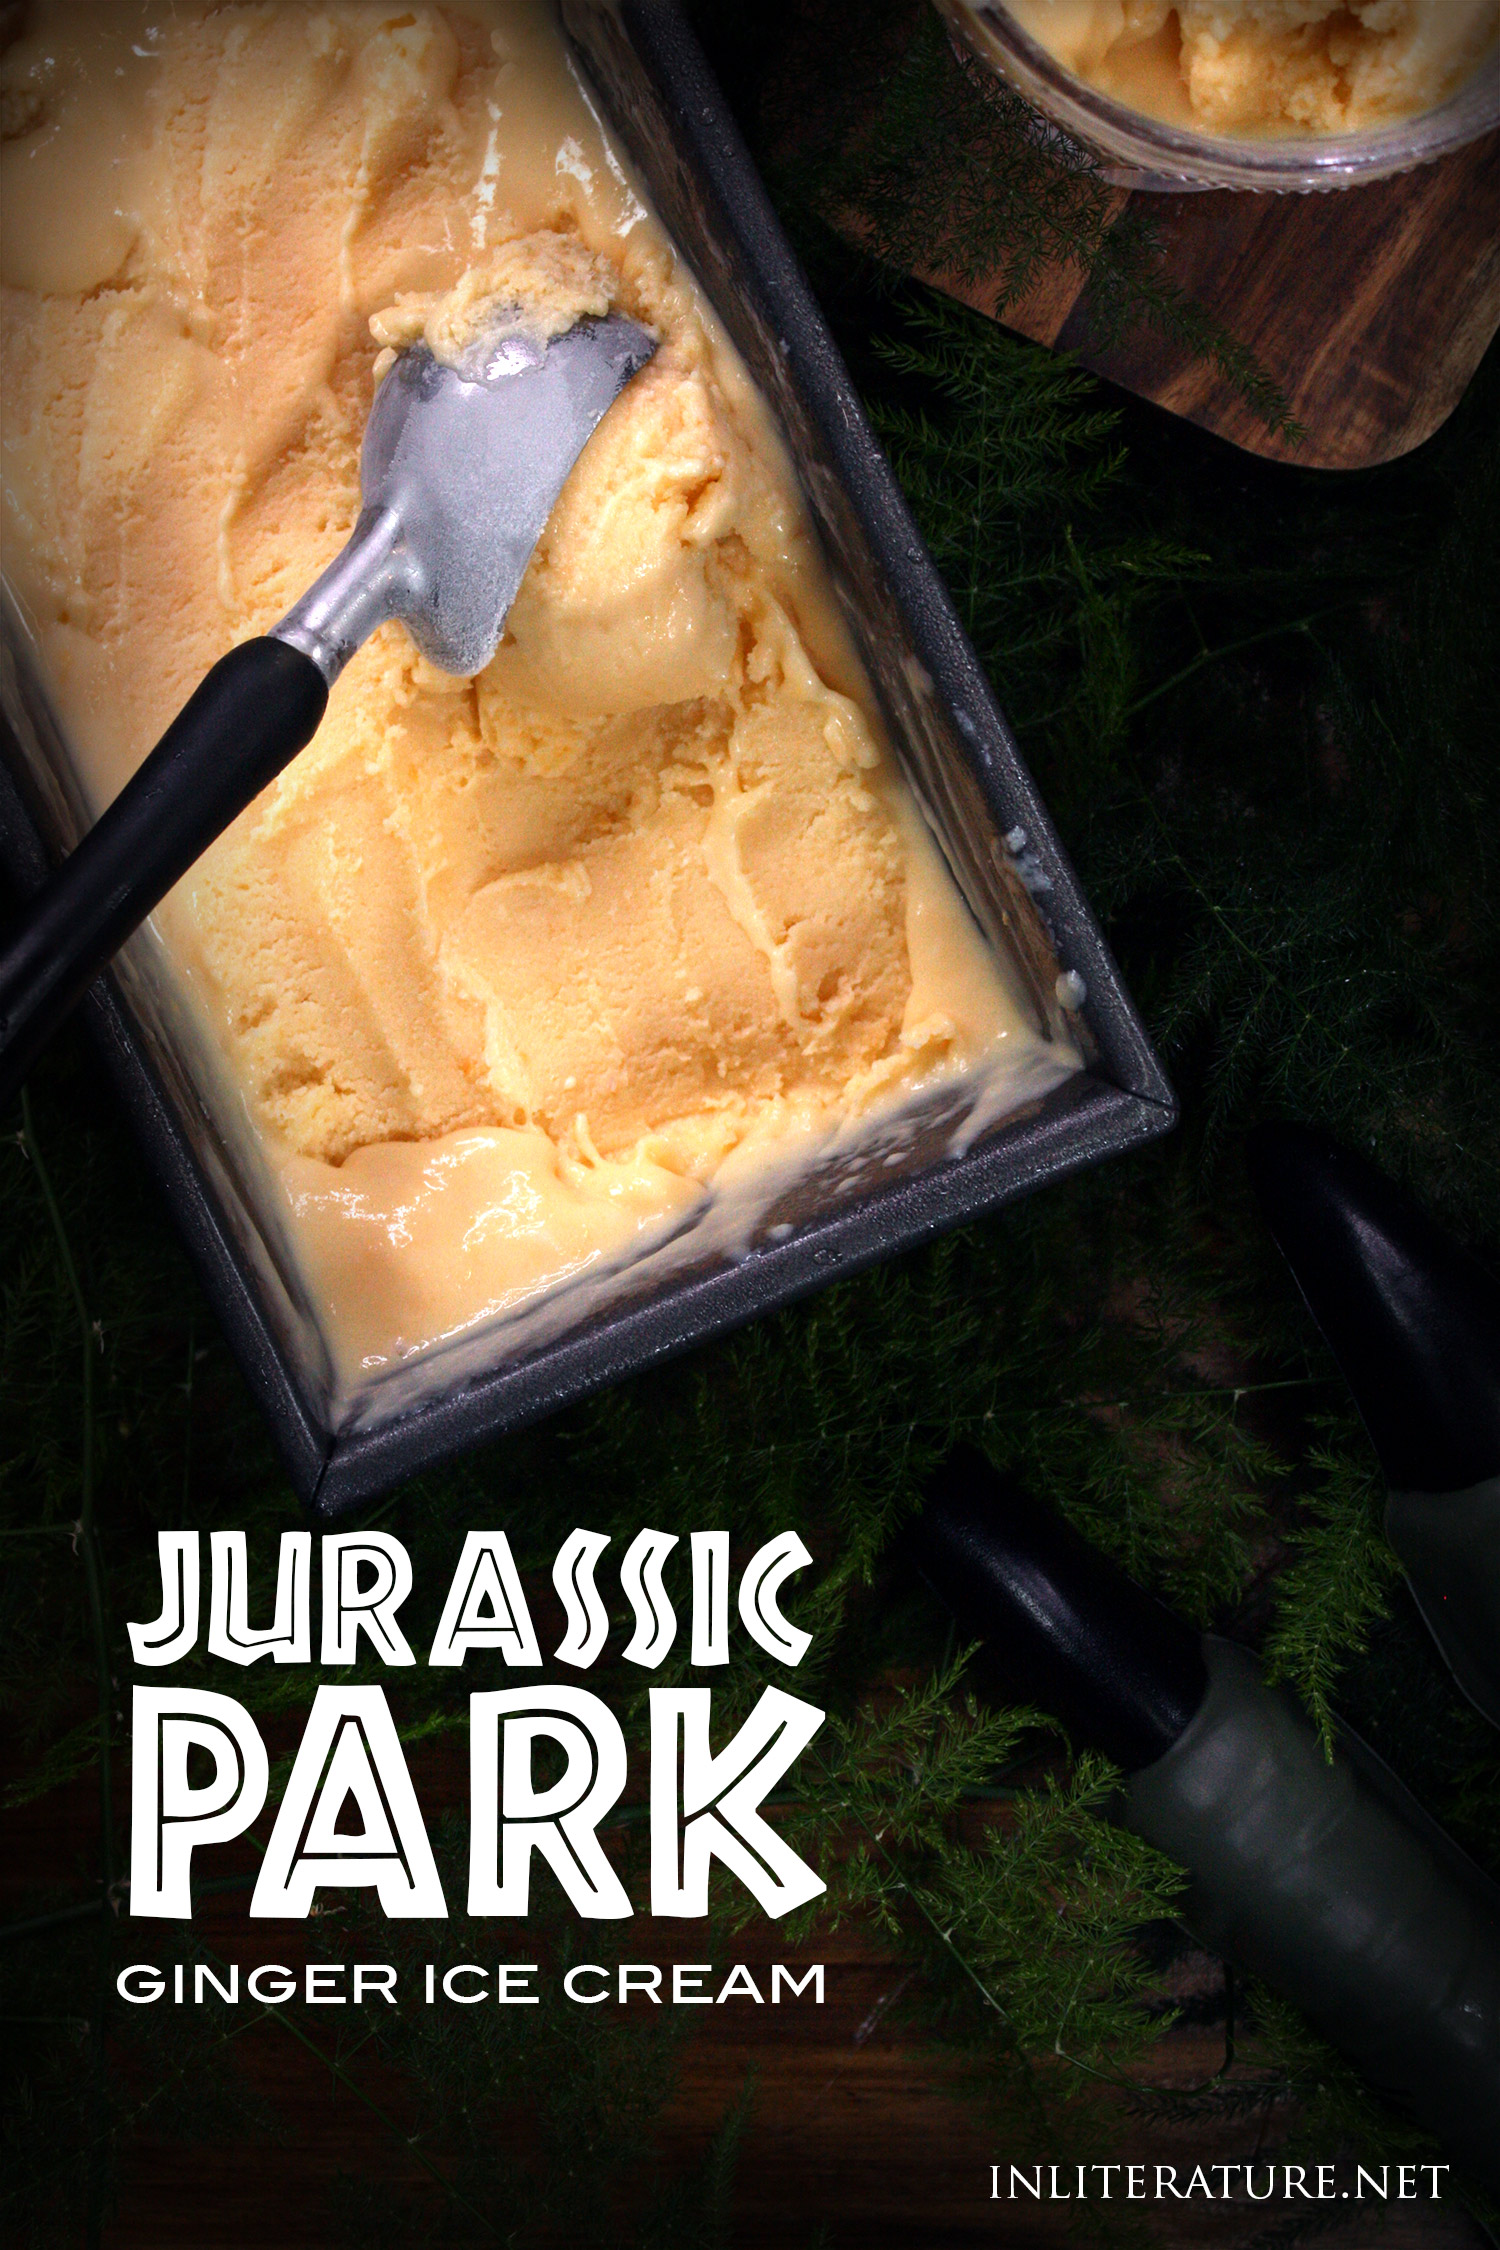 Whip up this delicious ginger ice cream mentioned in the original Jurassic Park novel. Perfect for your Jurassic World party to celebrate the latest movie, Fallen Kingdom!